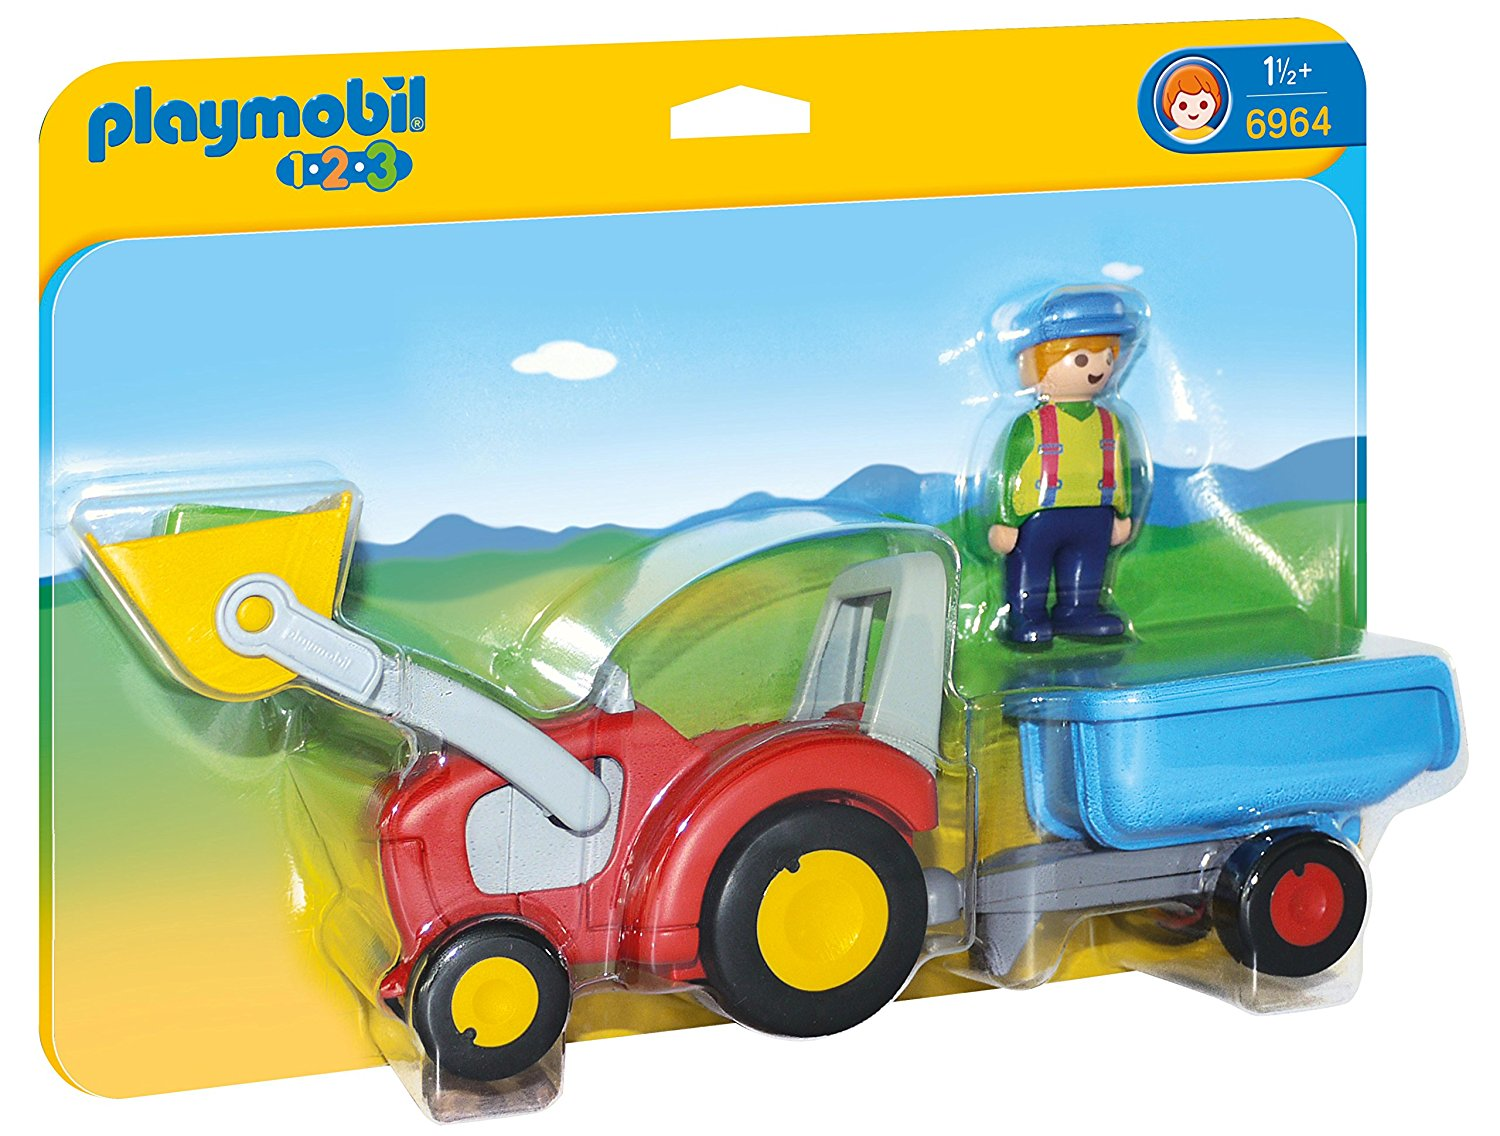 Tractor with Trailer, Clean up around the farm with the Tractor with Trailer By PLAYMOBIL by